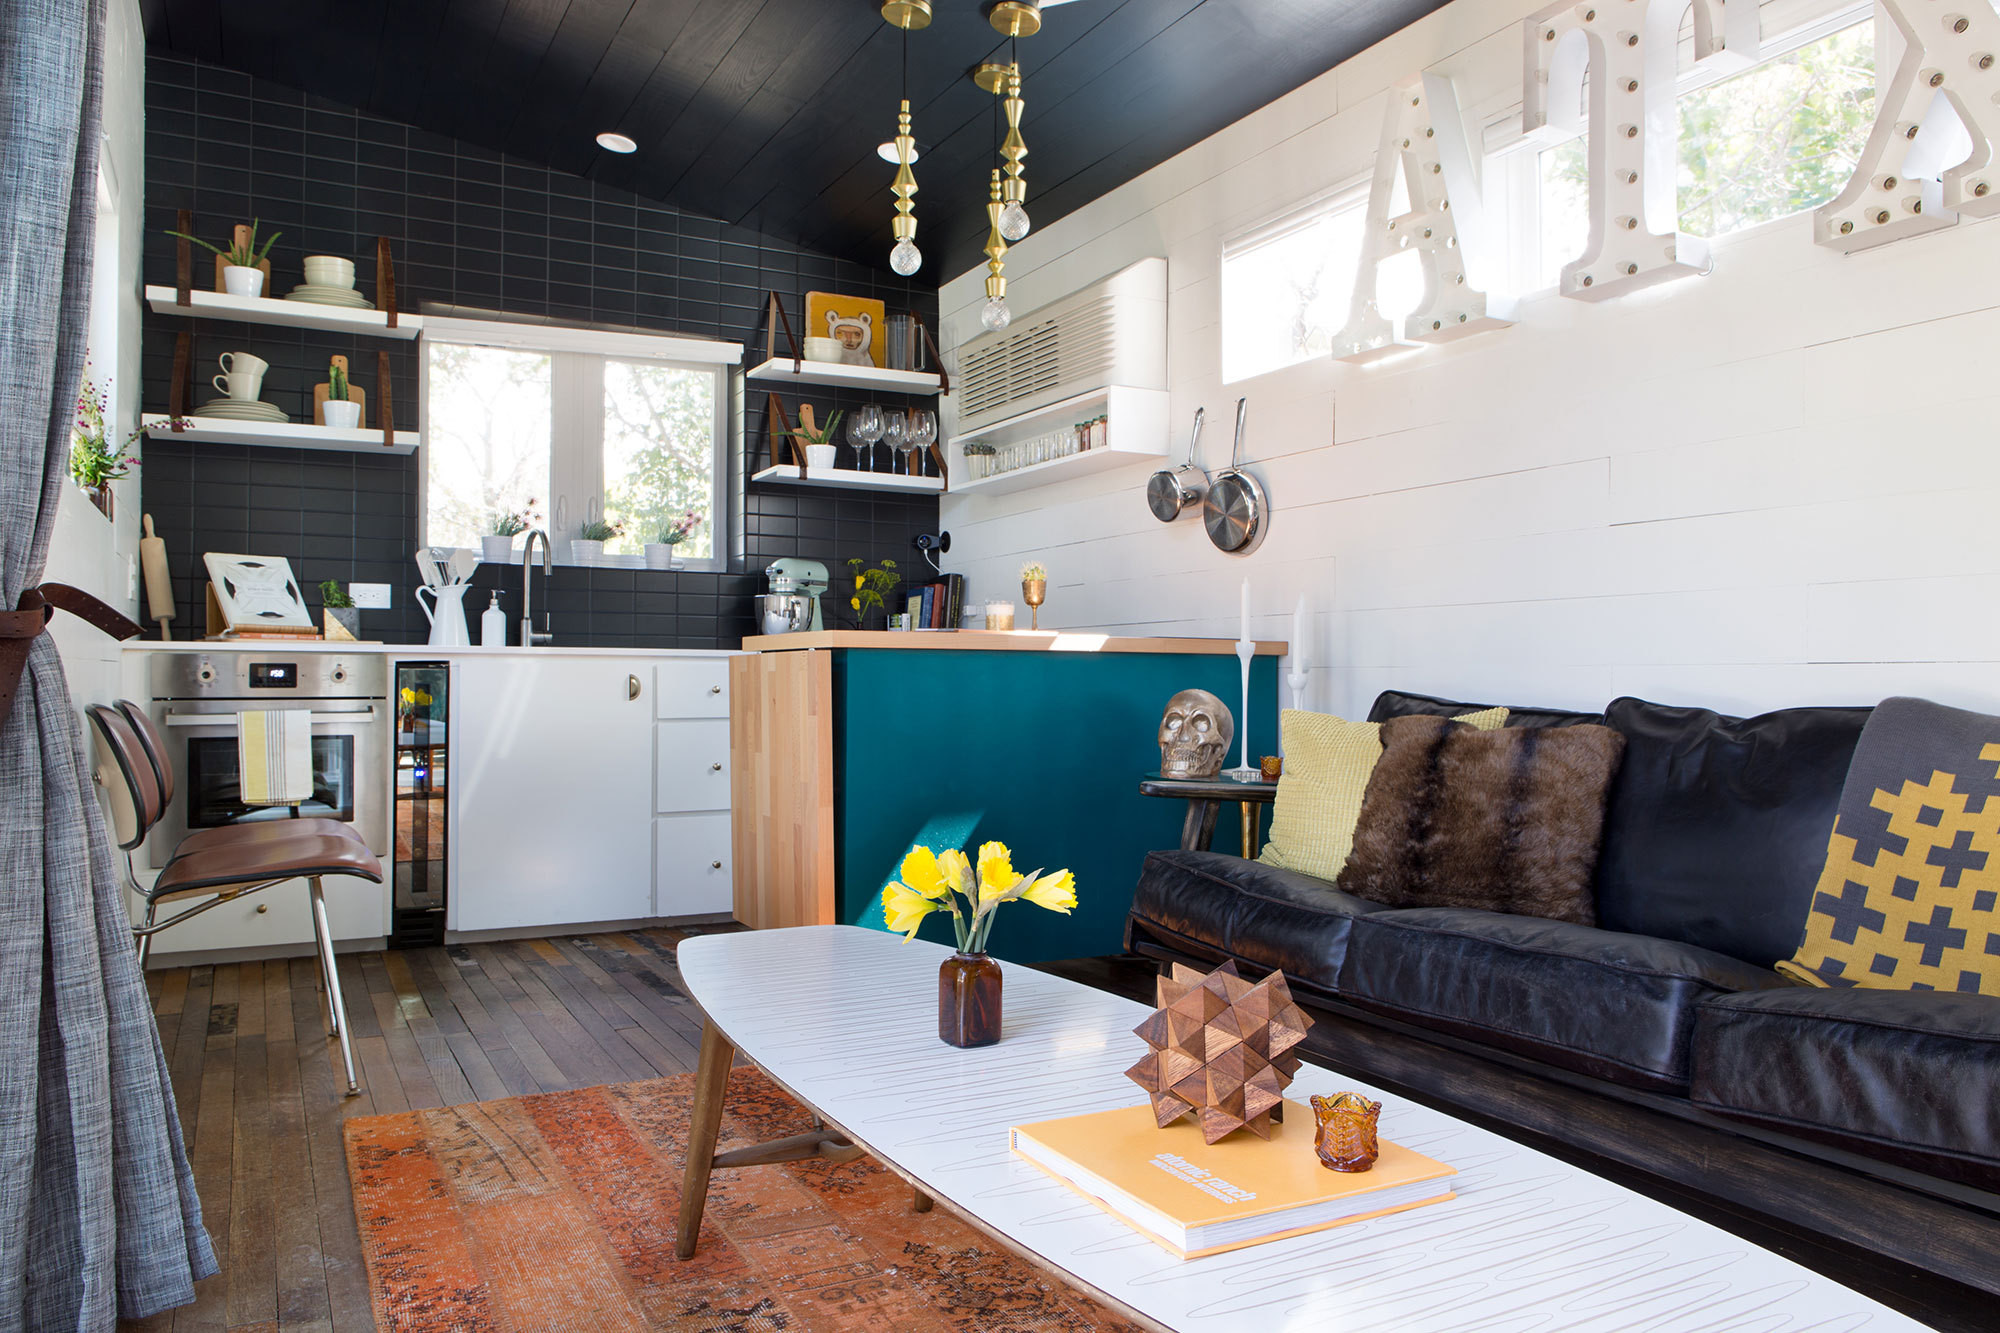 House tour vivienda mini y sobre ruedas en texas mi for Programa interiorismo online